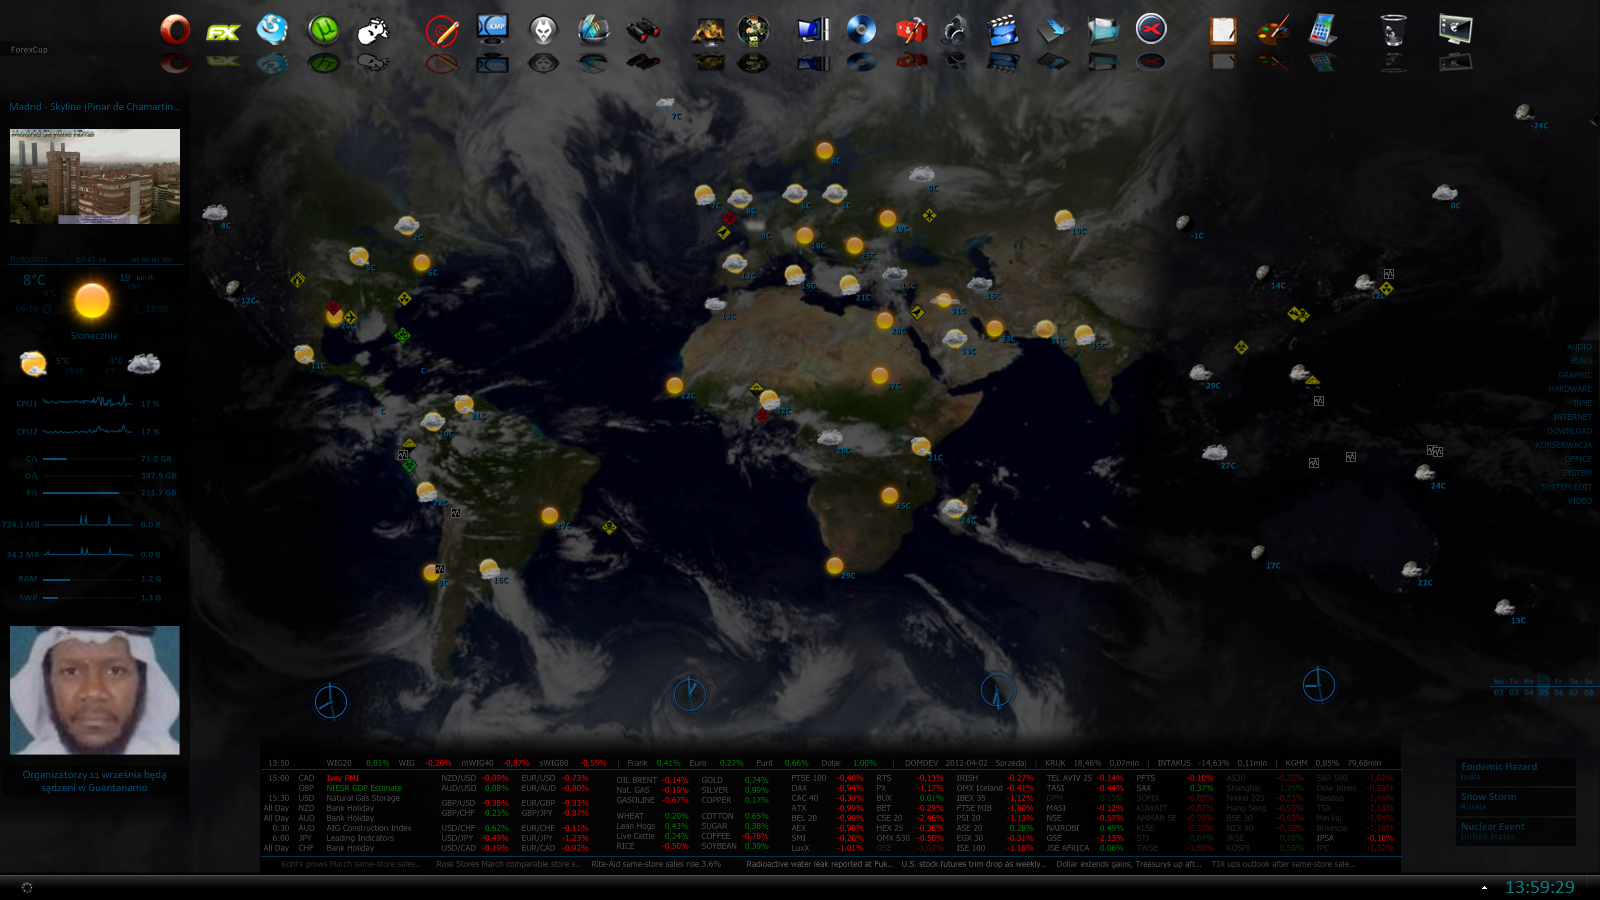 Windows 7 utilities rainmeter skins world map windows 7 rainmeter skin gumiabroncs Image collections